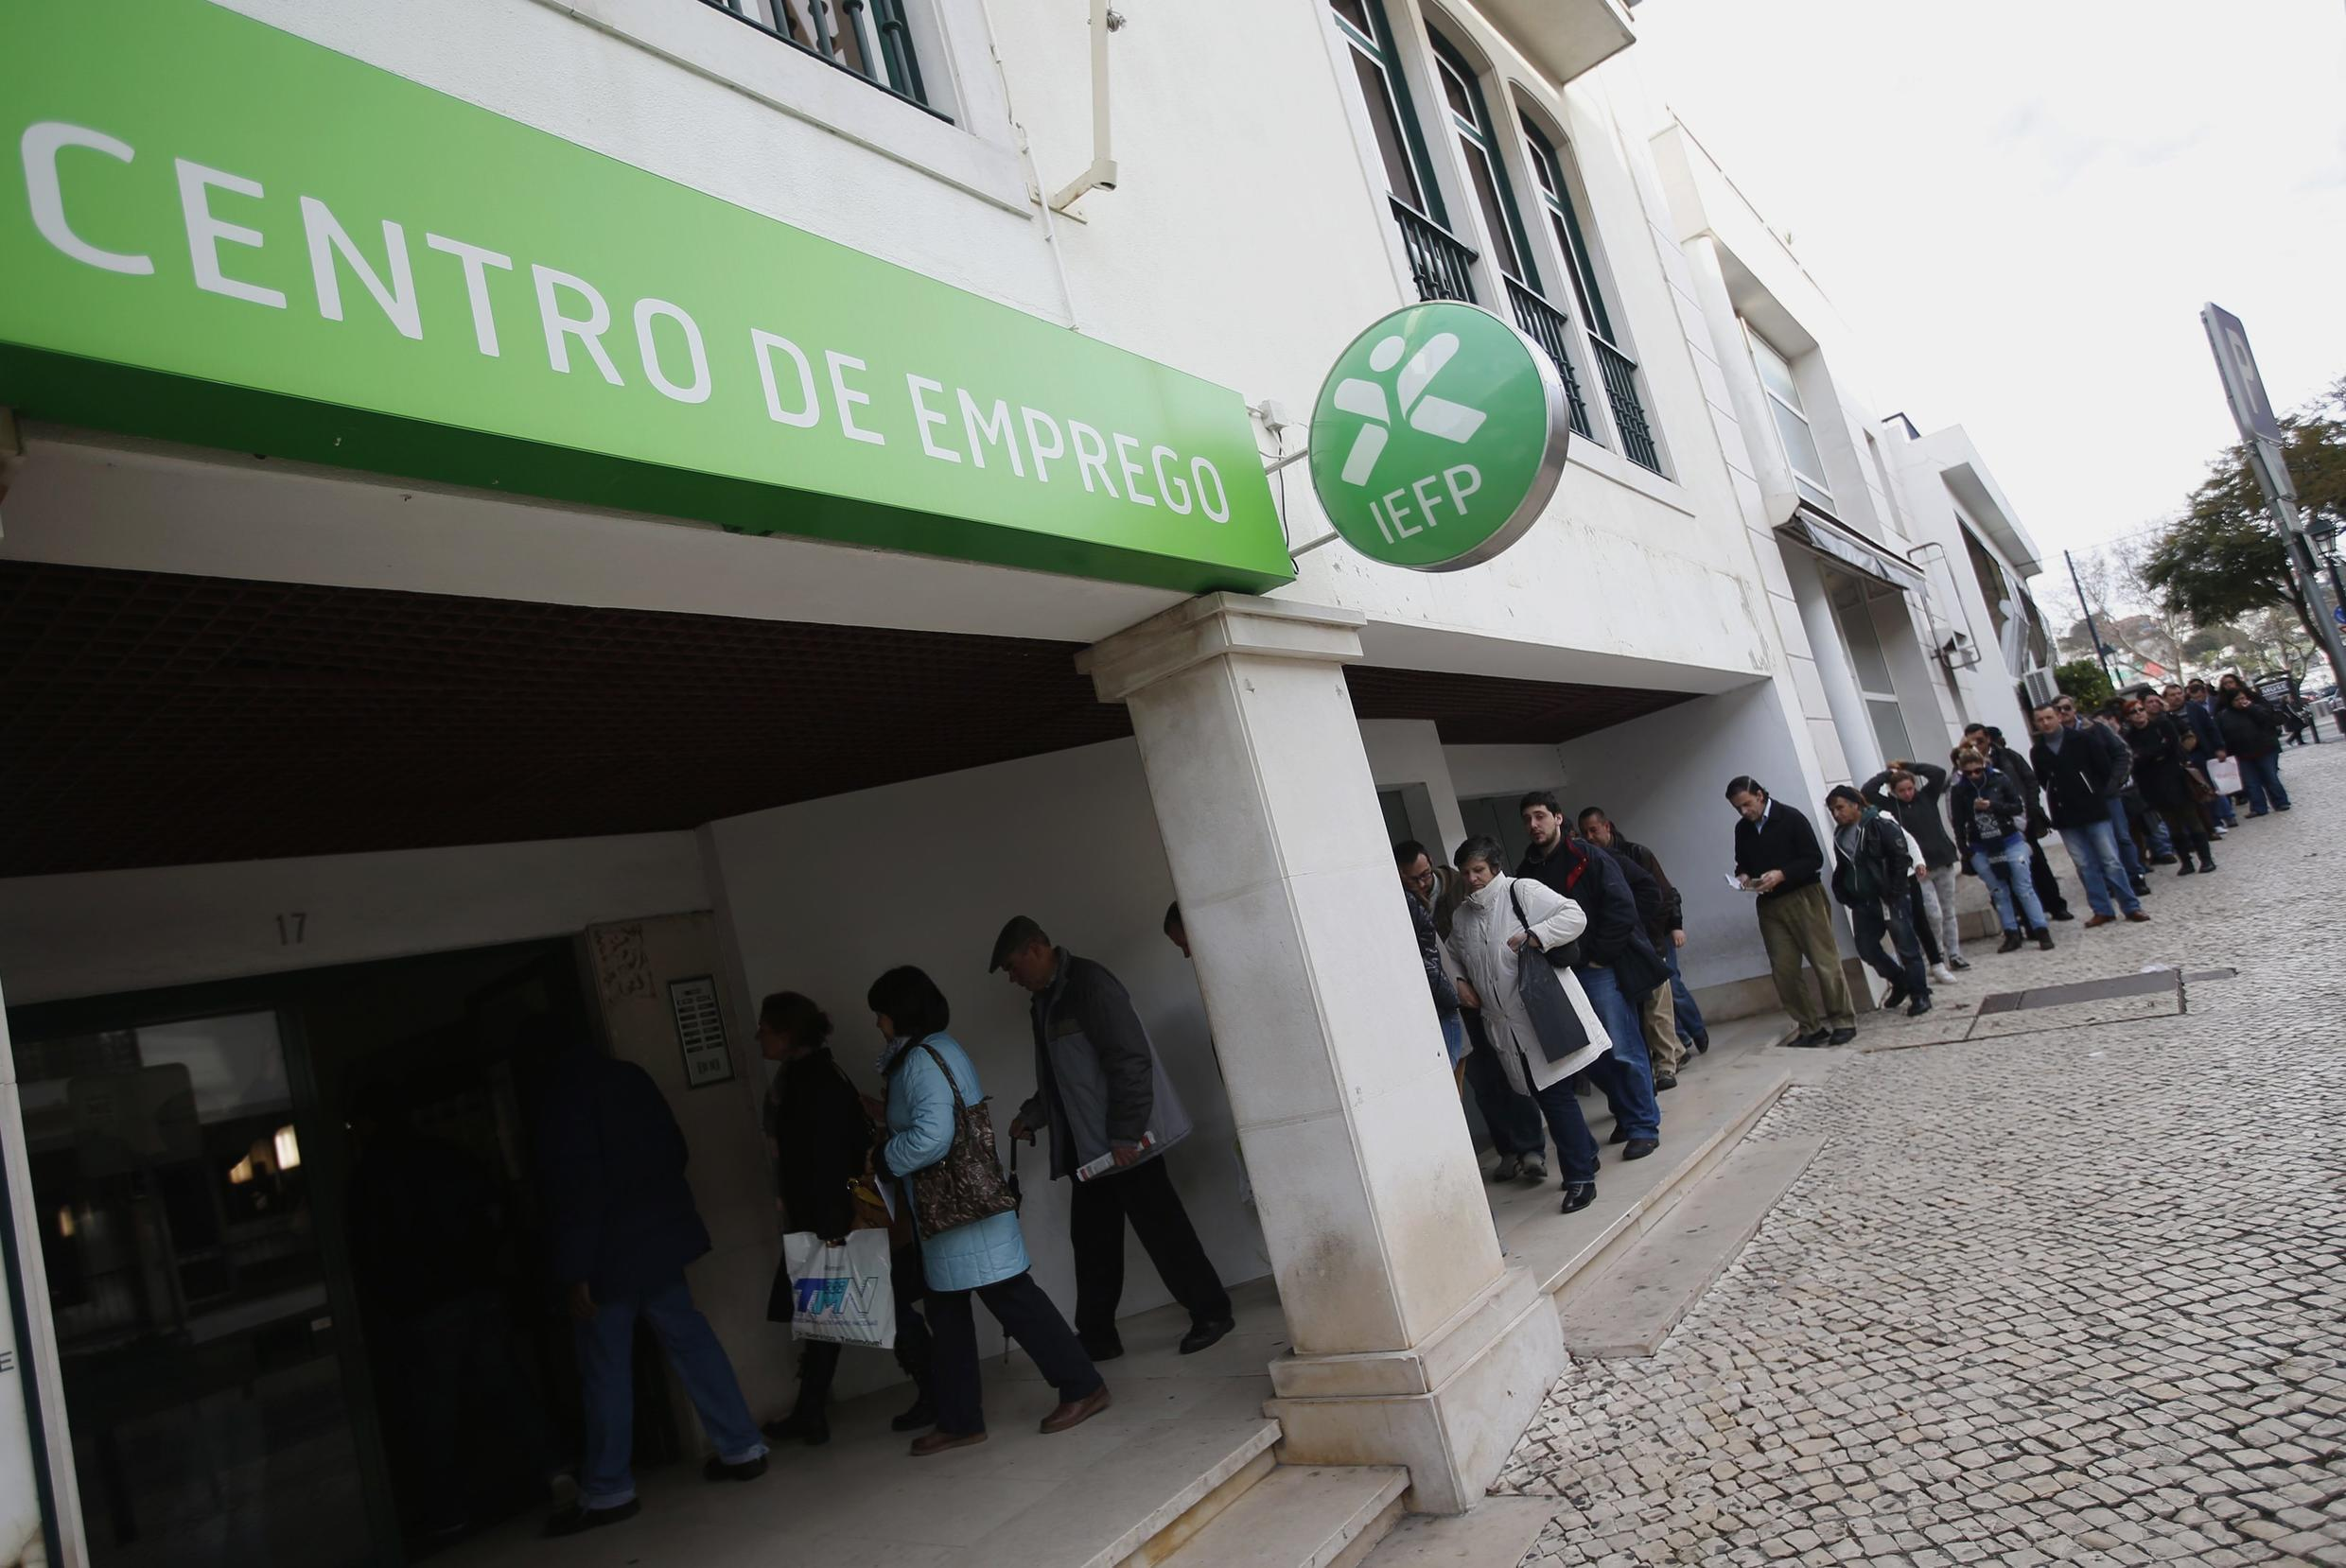 People wait to enter a government-run employment office in Cascais, 13 February, 2013